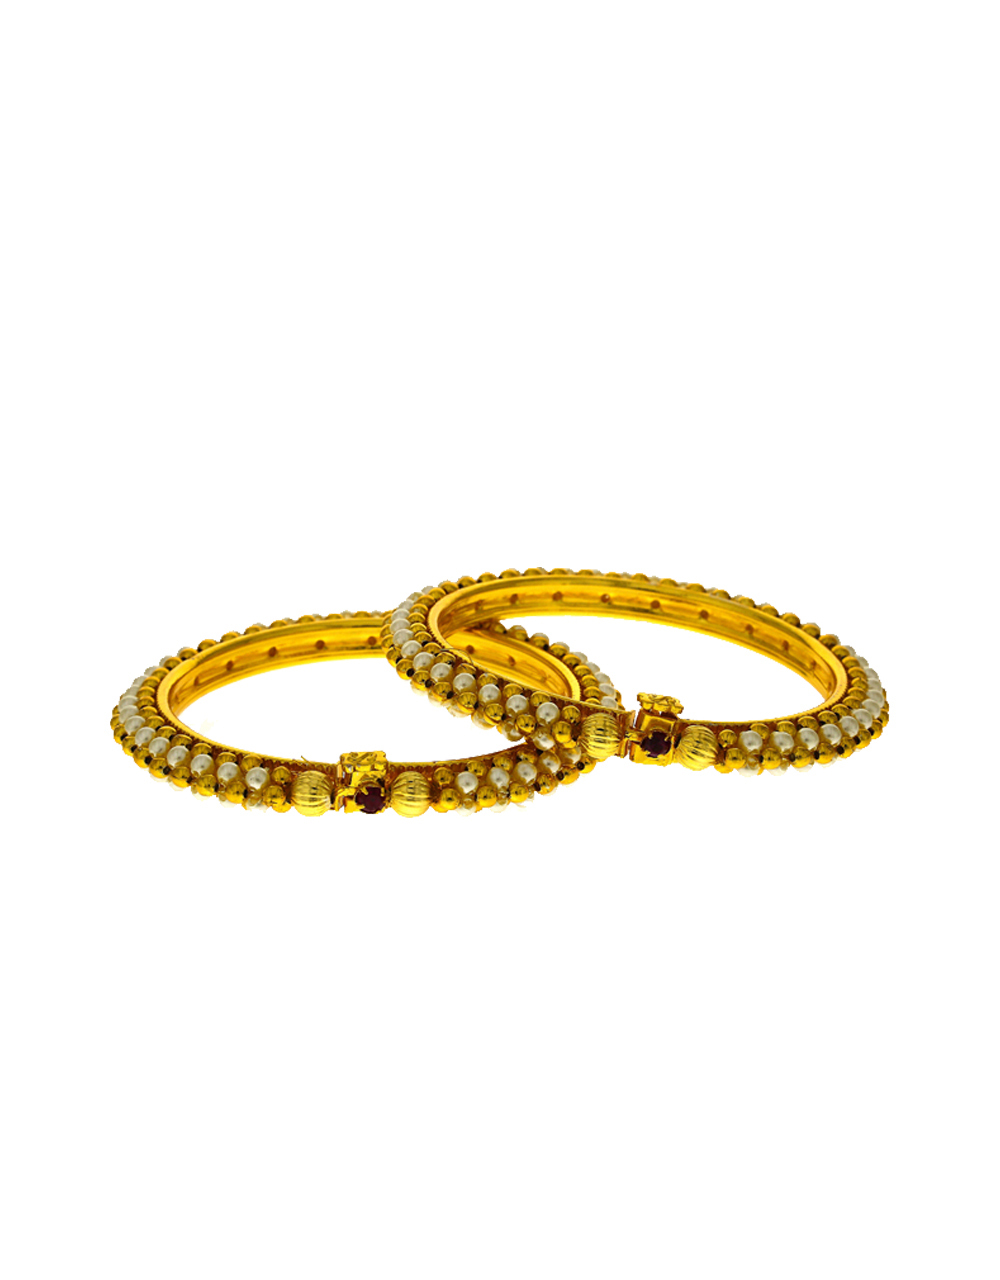 Classy design decorated with pearl bangles for women